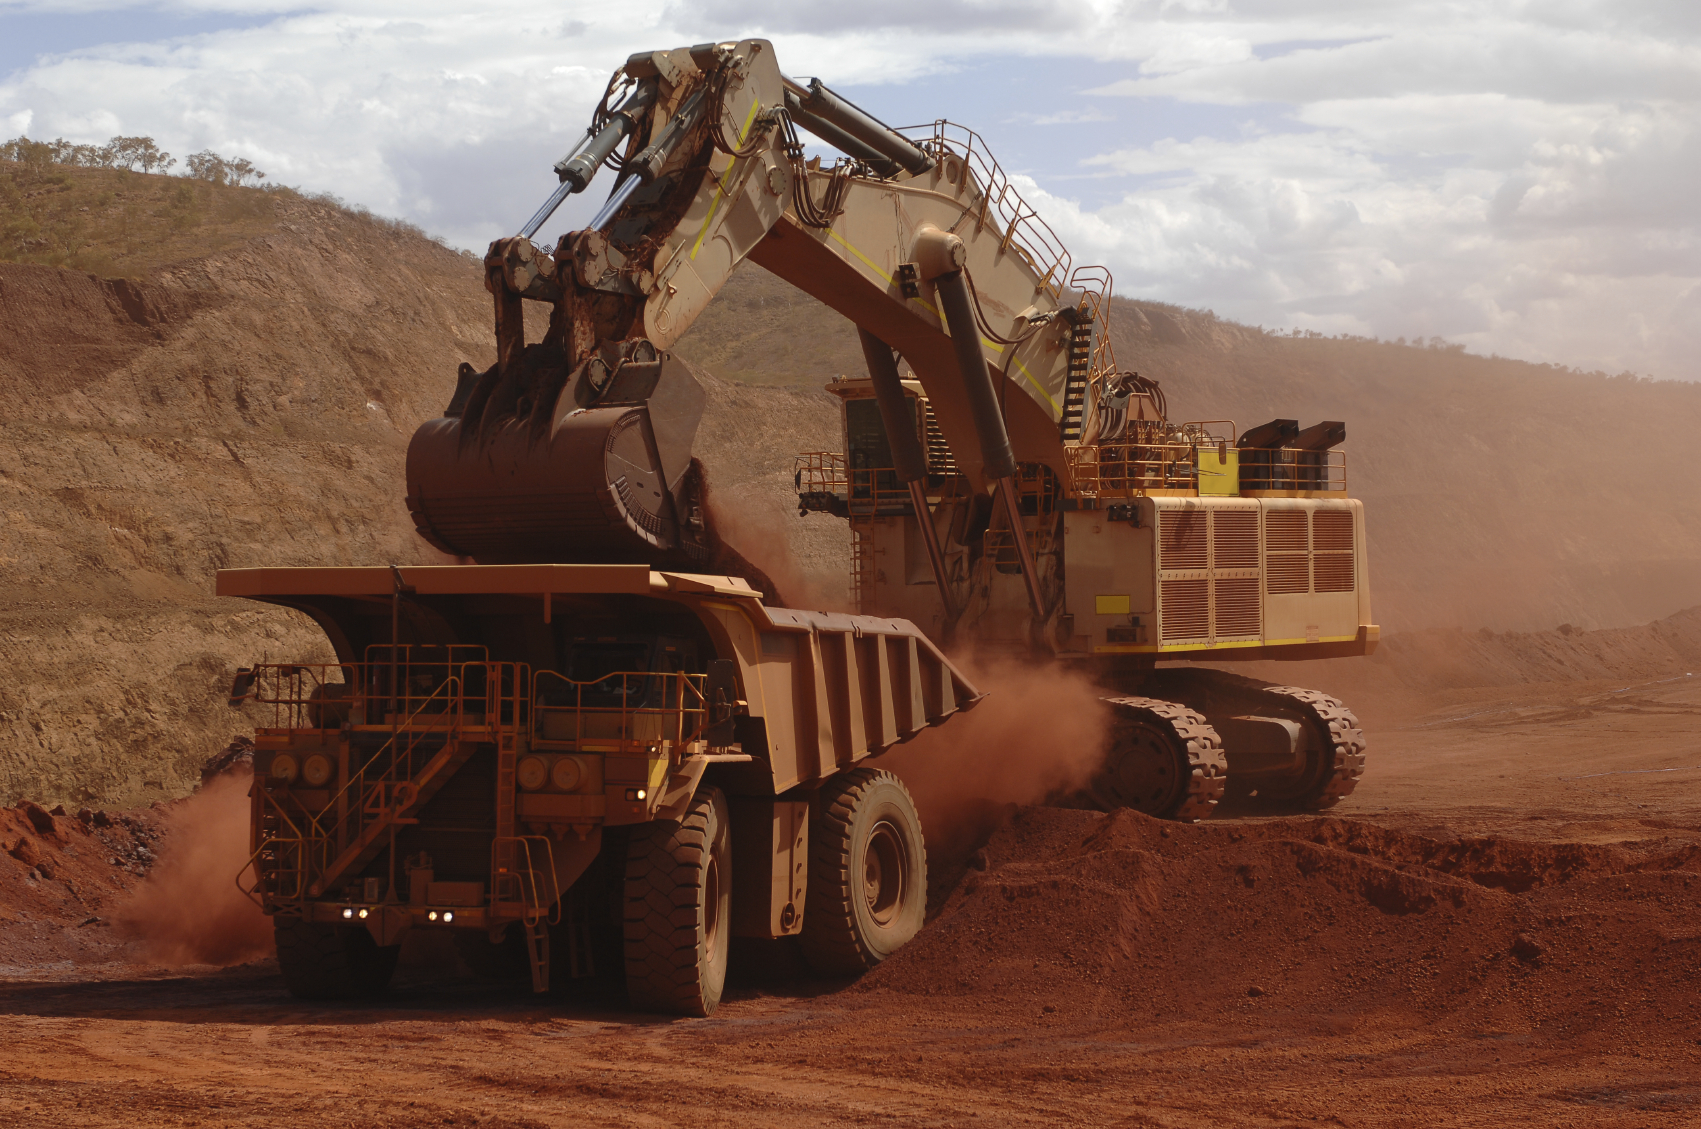 How To Start A Sand Supply Business in Nigeria